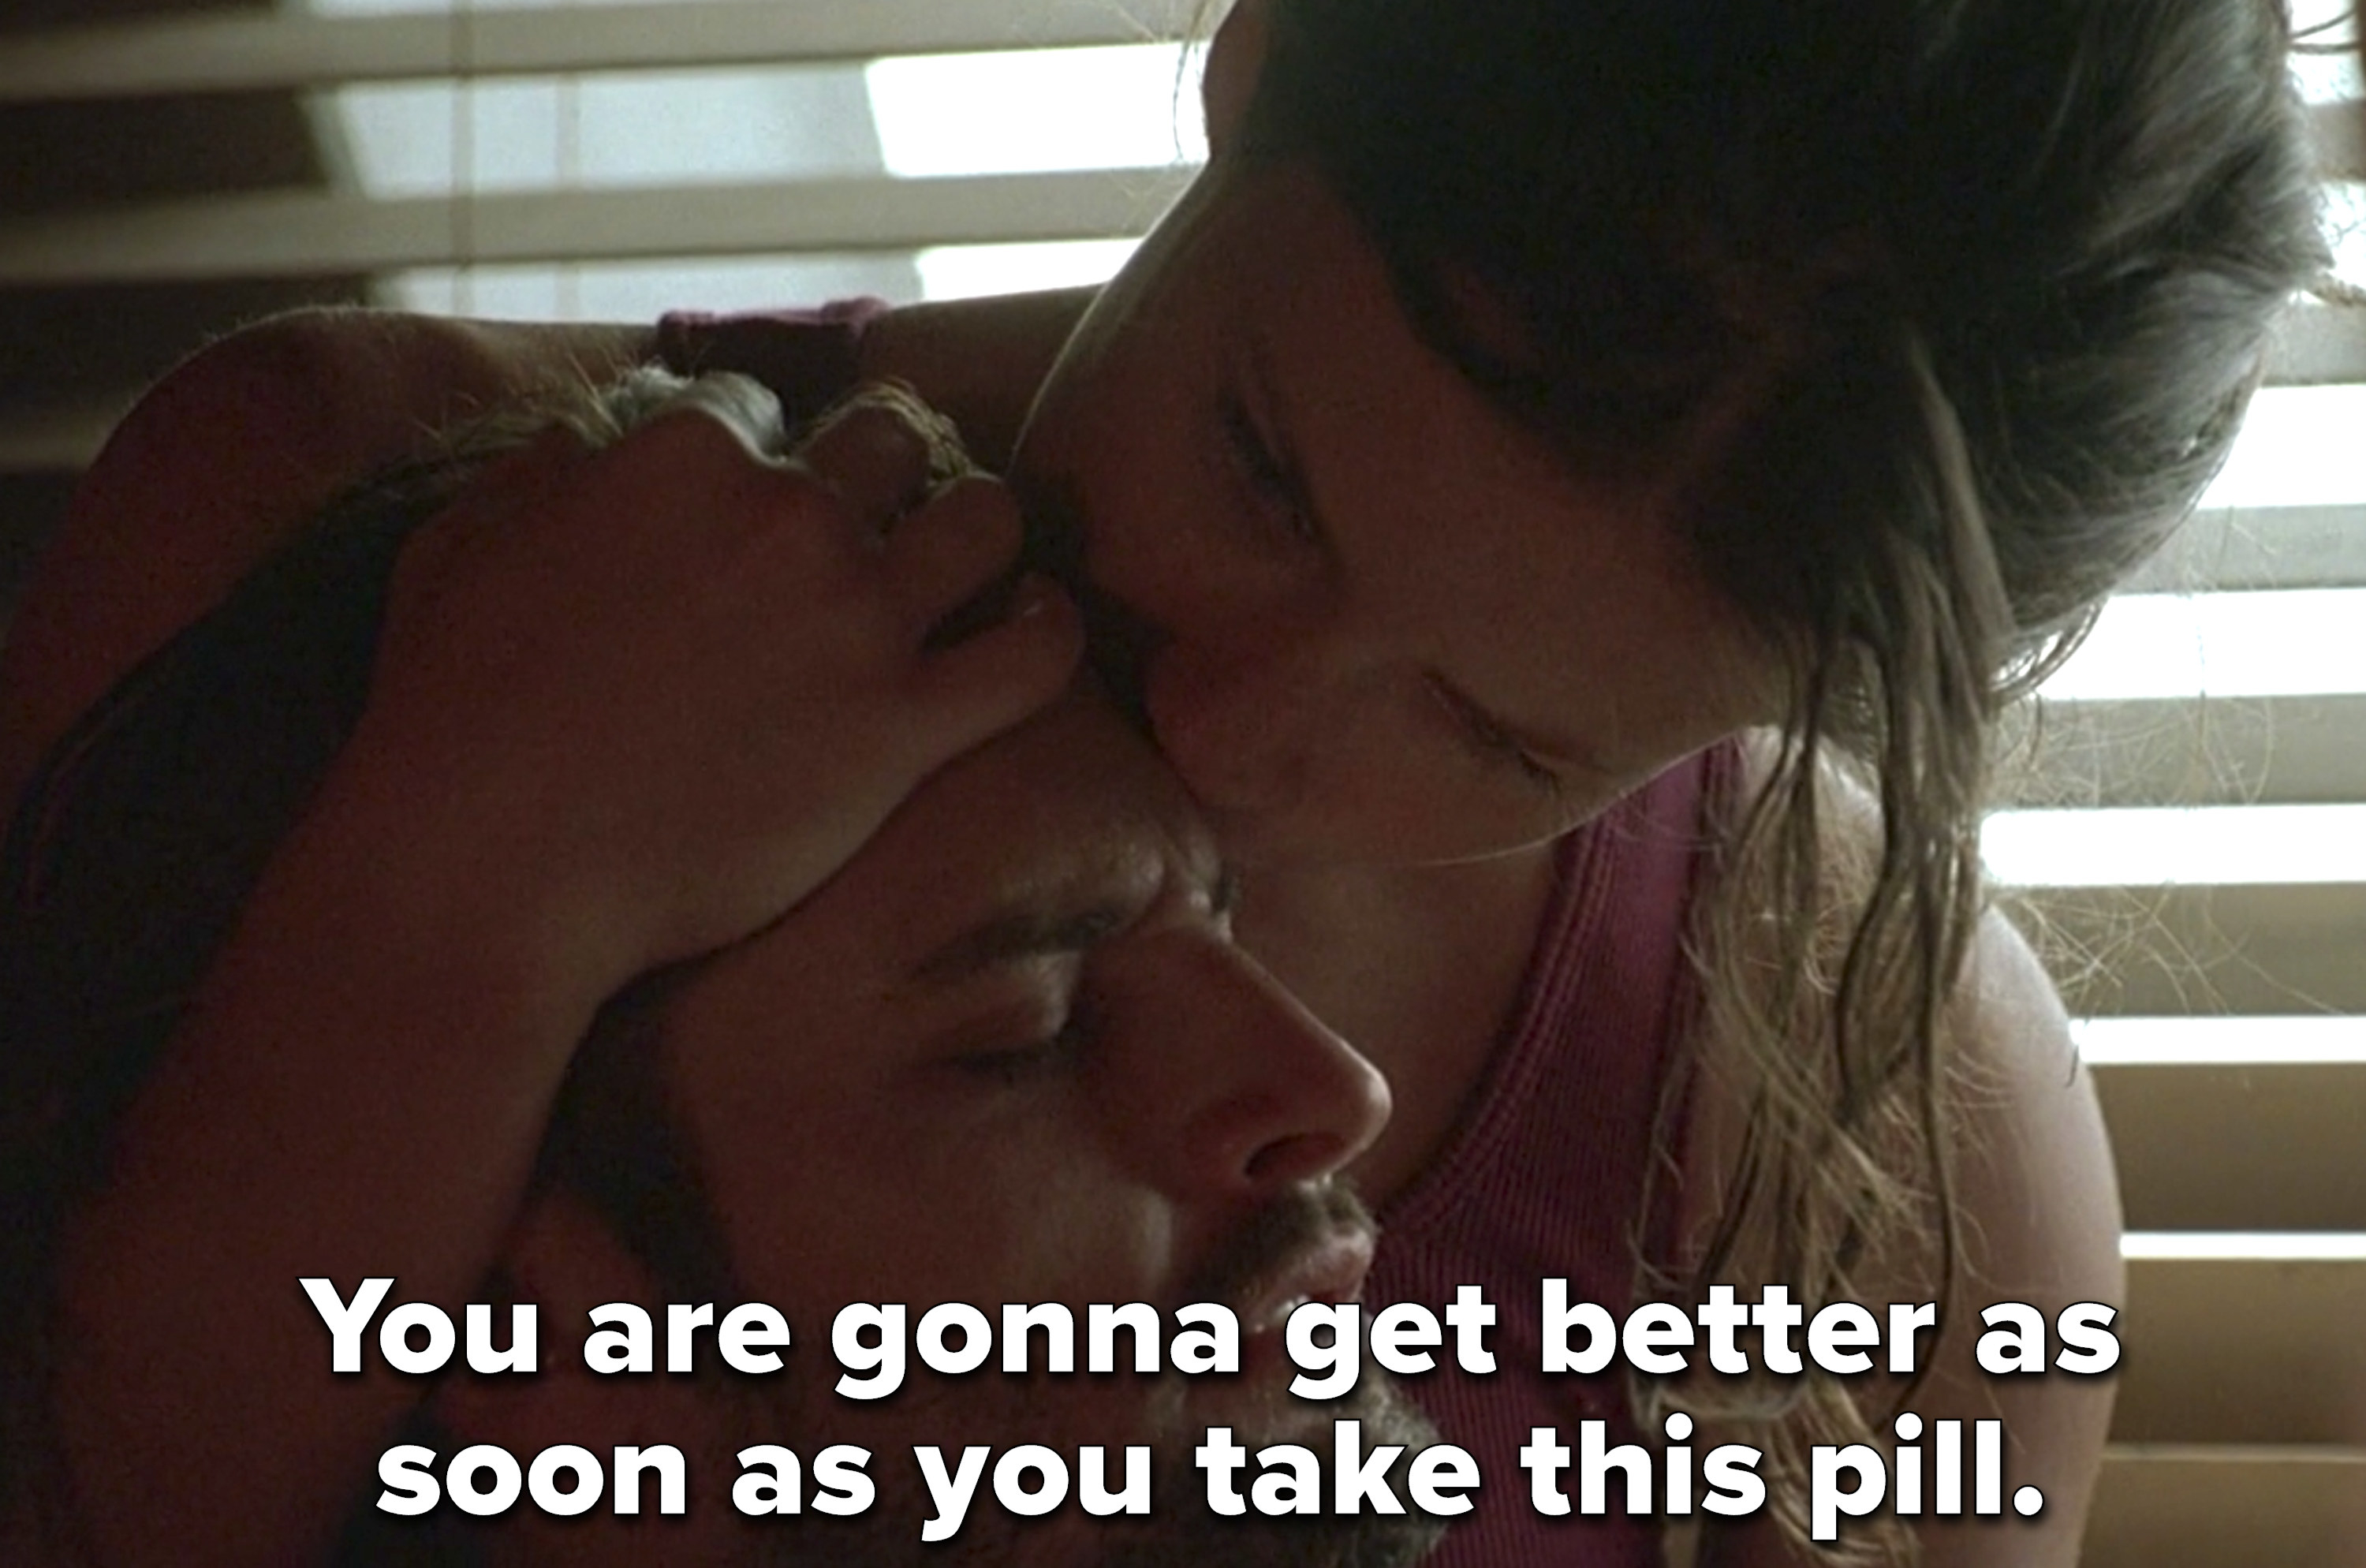 Kate kisses Sawyer's forehead and says he'll get better if he takes the pill